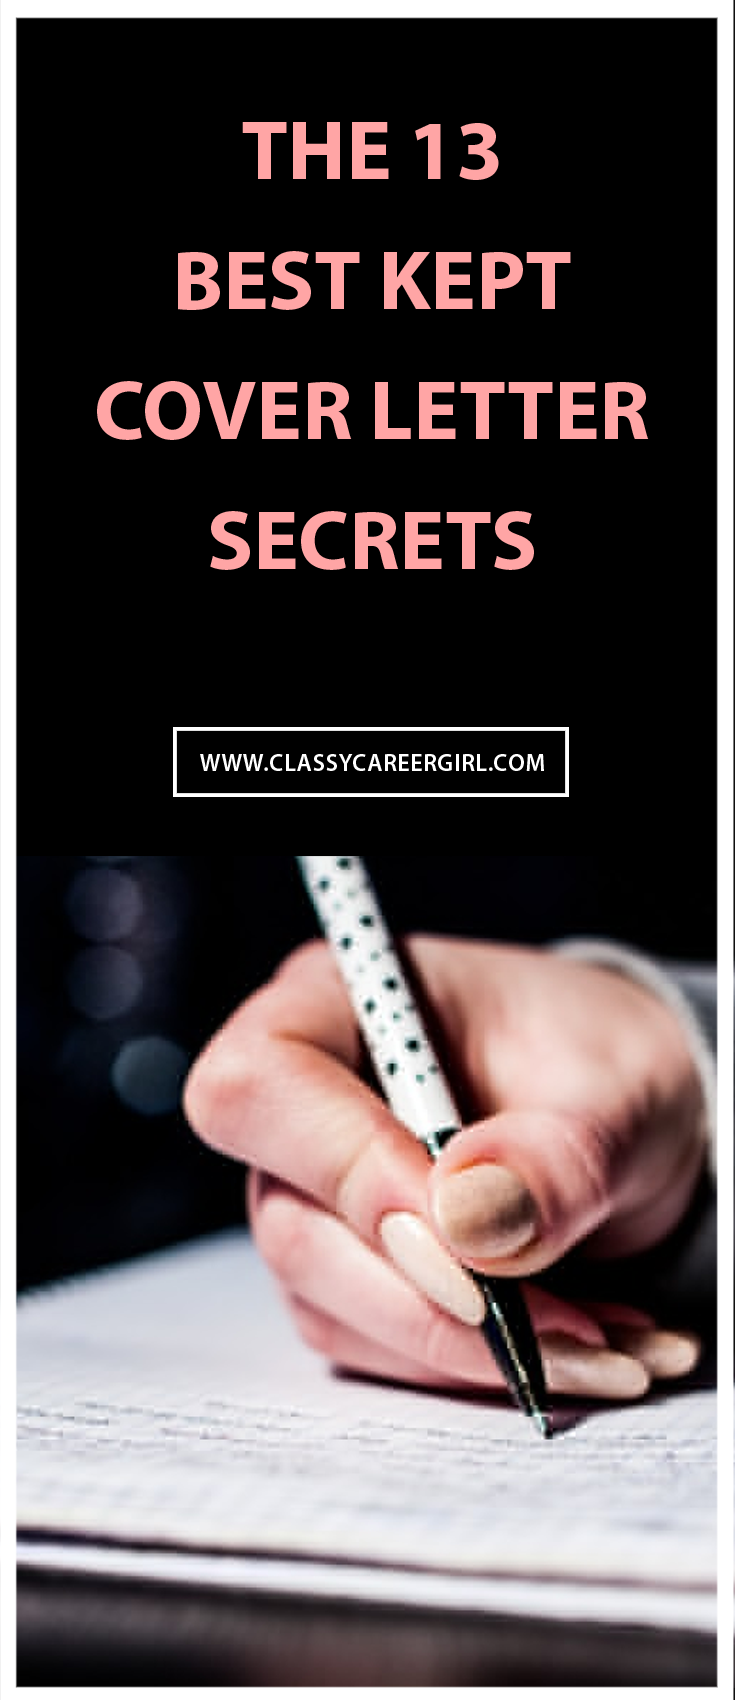 The 13 Best Kept Cover Letter Secrets Small Things Letter